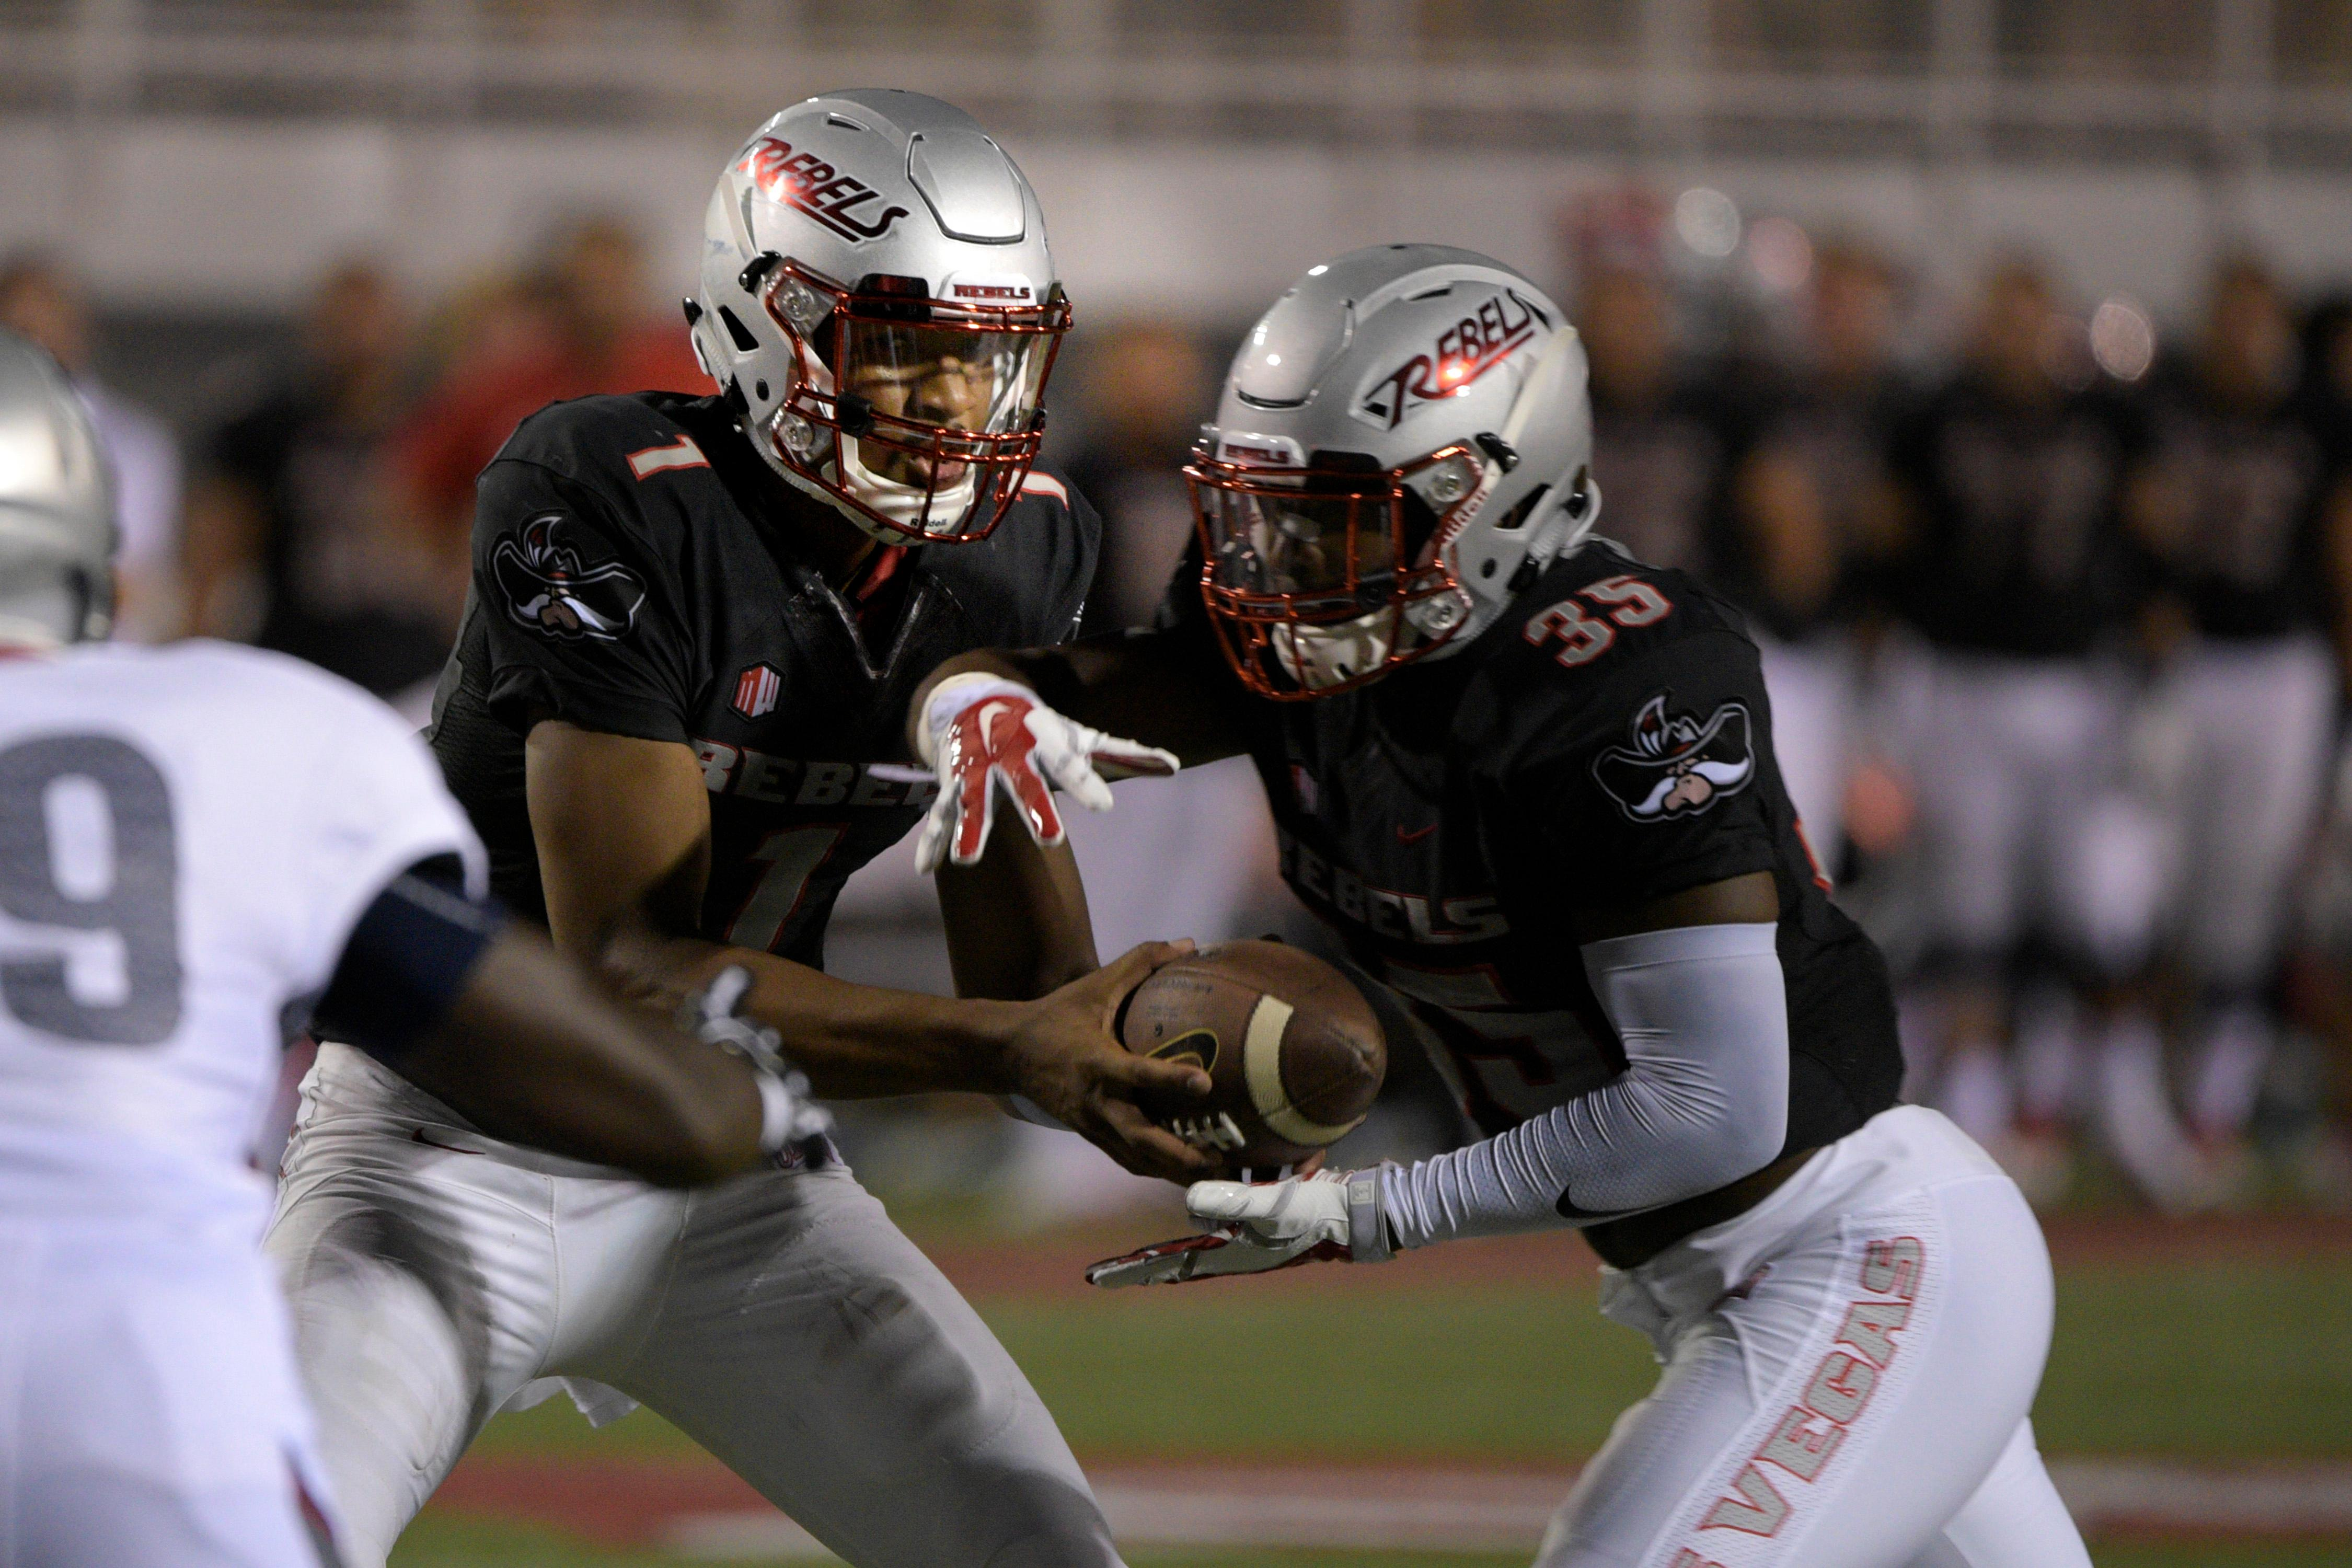 UNLV quarterback Armani Rogers hands off to running back Xaviar Campbell during their game against Howard University Saturday, September 2, 2017, at Sam Boyd Stadium in Las Vegas. Howard defeated UNLV 43-40 to notch what is believed to be the biggest upset in college football history. [Sam Morris/Las Vegas News Bureau]